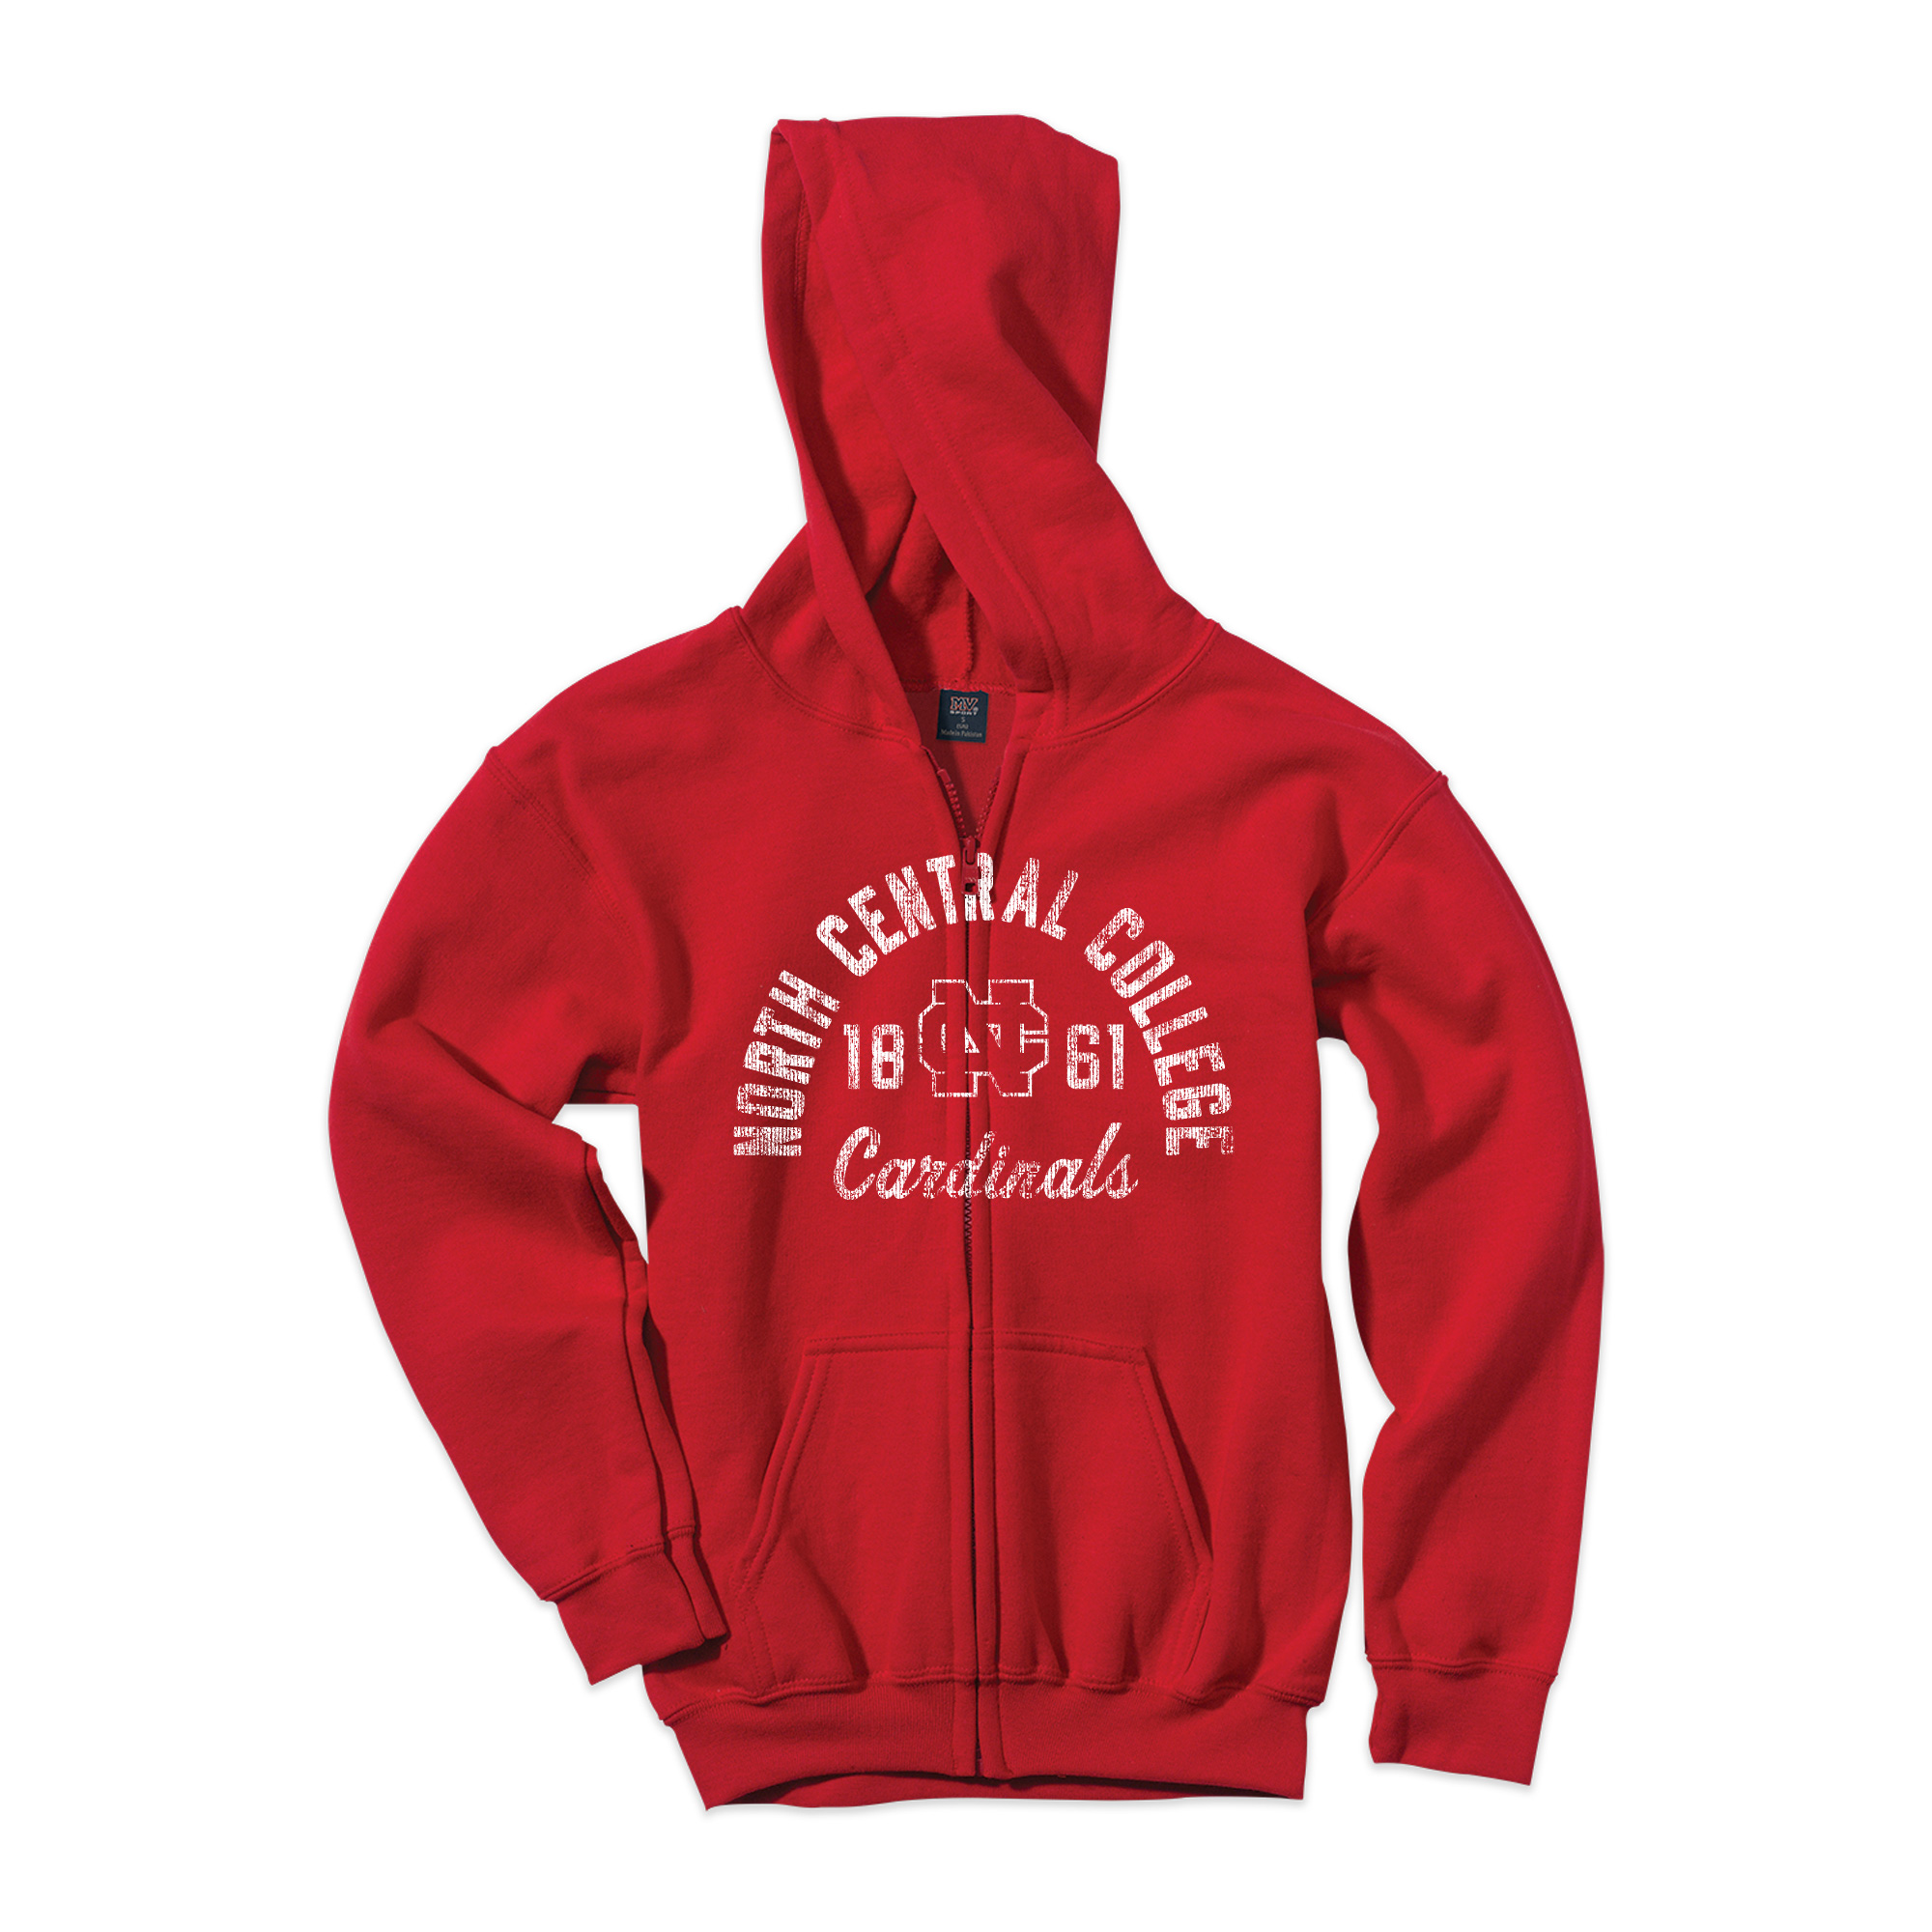 Image for the Youth Full Zip Hoodie Sweatshirt product